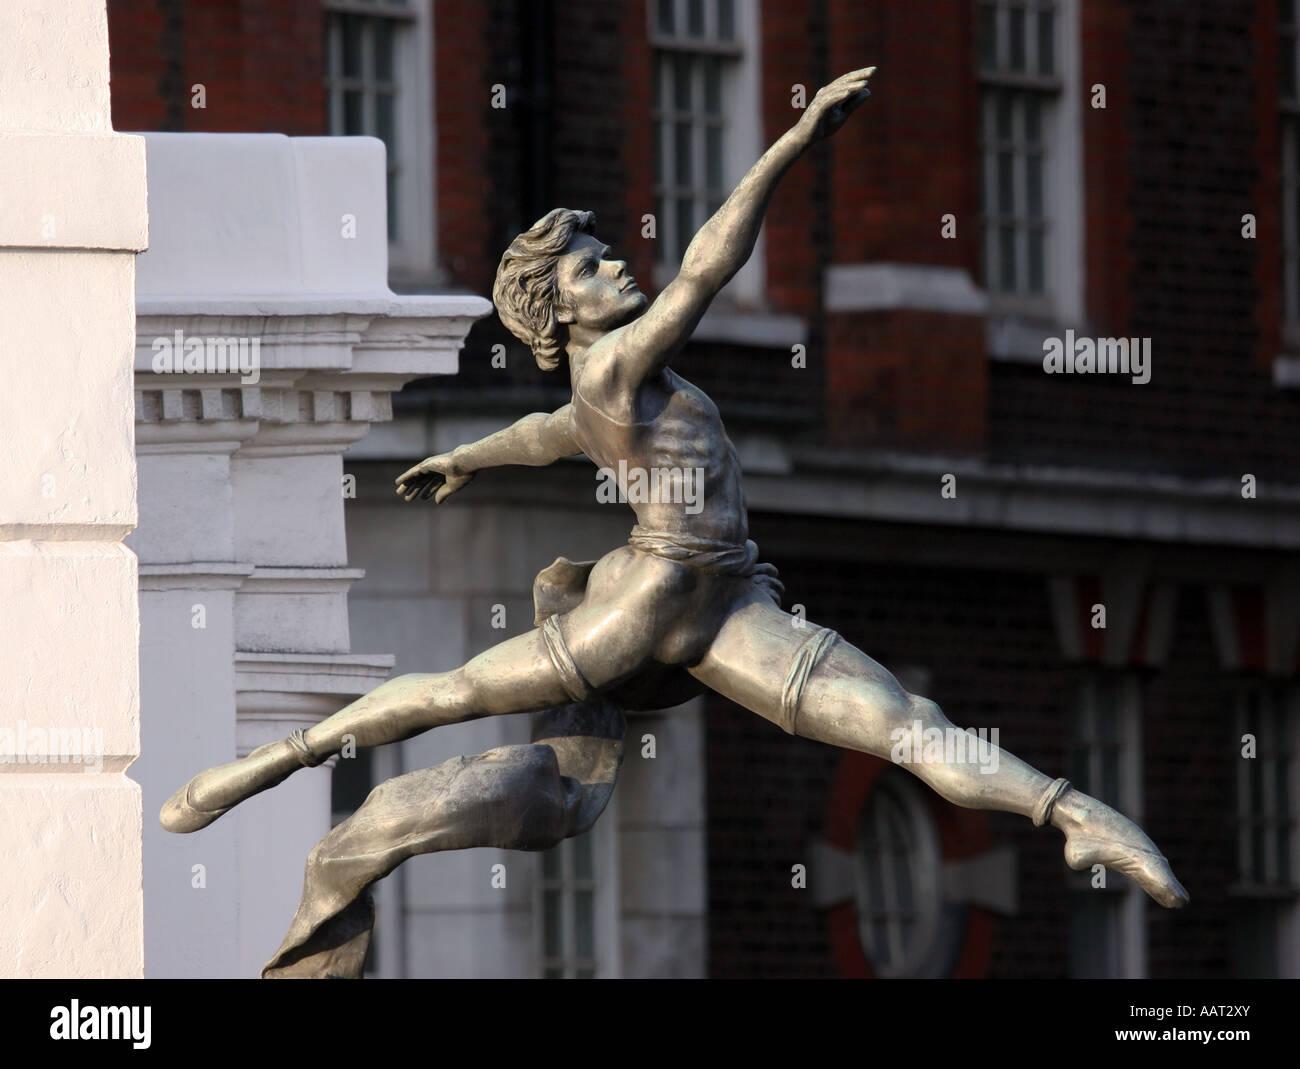 Jeté by Enzo Plazot bronze sculpture of a male ballet dancer outside Tate Britain gallery on London's Millbank - Stock Image